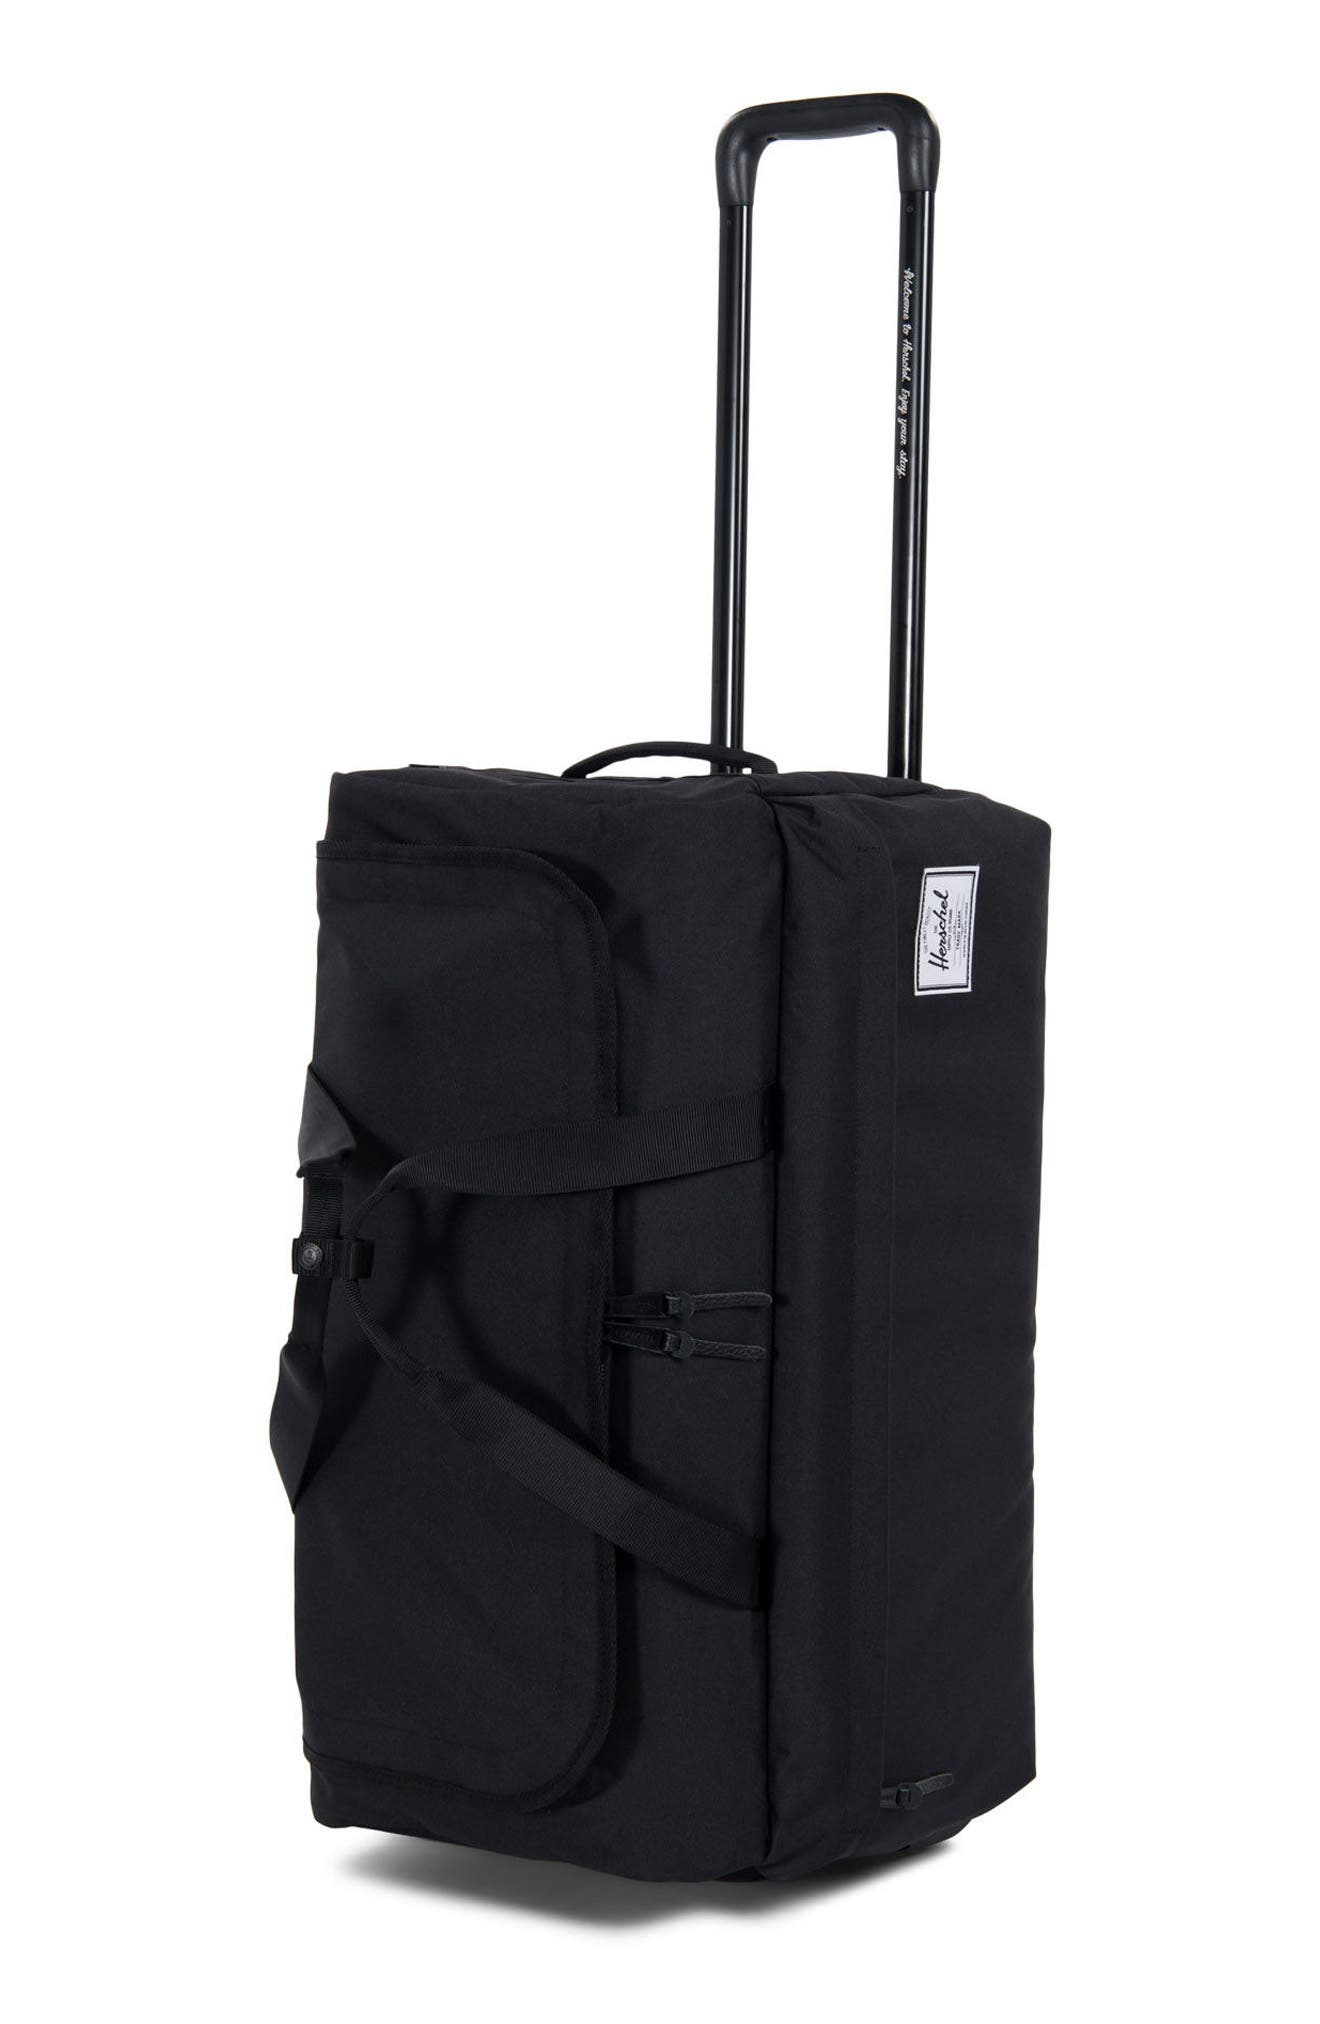 24-Inch Wheelie Rolling Carry-On,                             Main thumbnail 1, color,                             BLACK